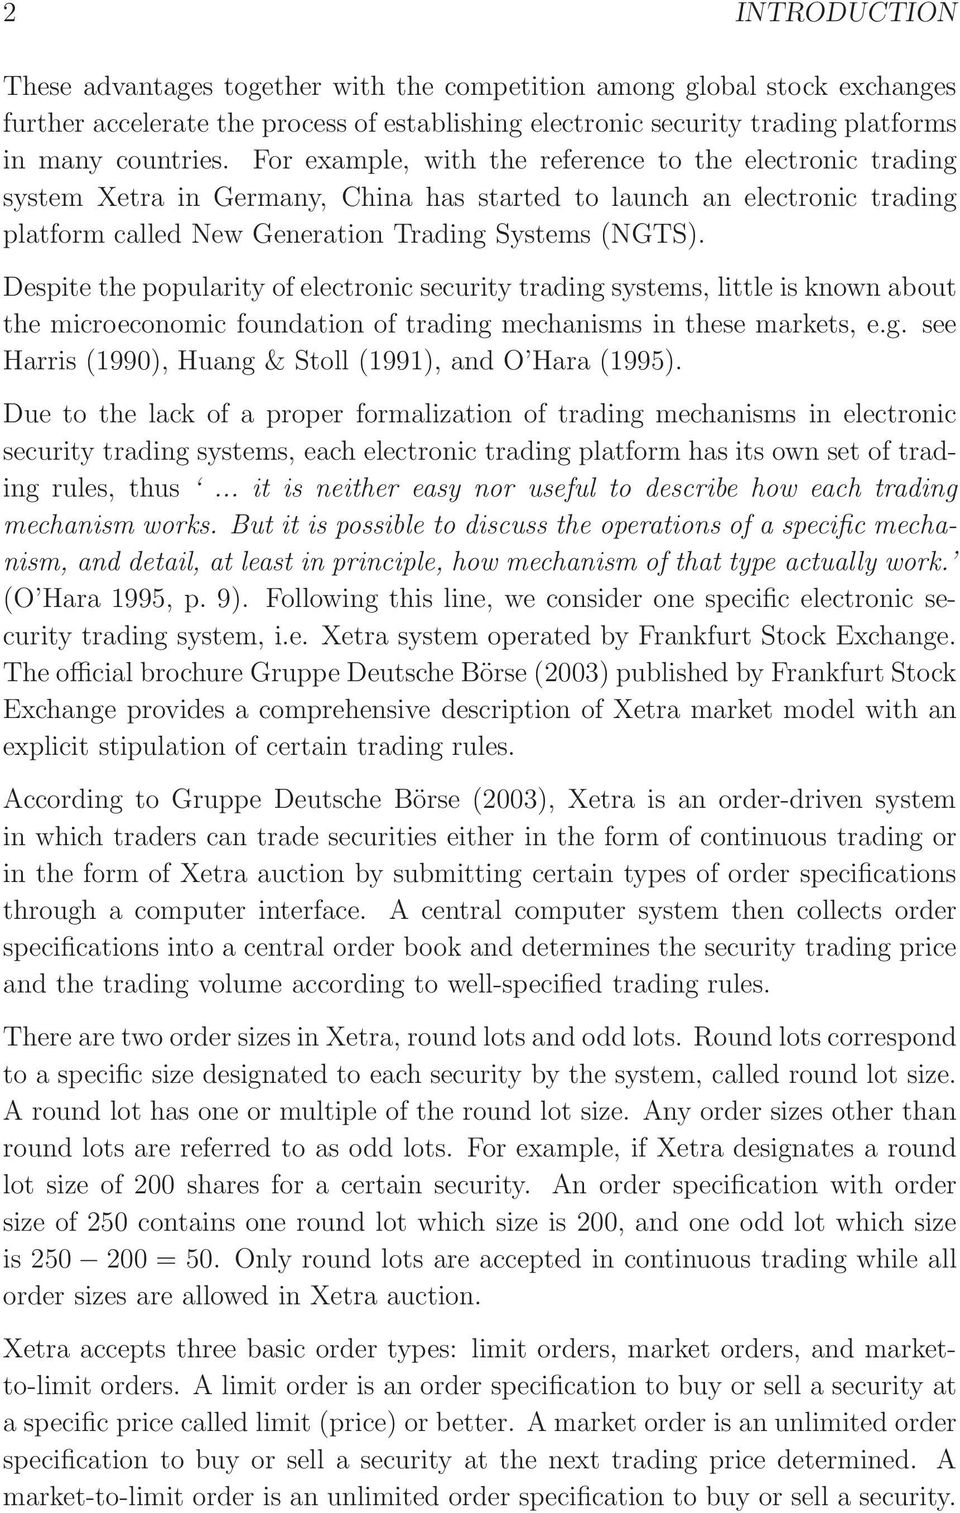 Despite the popularity of electronic security trading systems, little is known about the microeconomic foundation of trading mechanisms in these markets, e.g. see Harris (1990), Huang & Stoll (1991), and O Hara (1995).